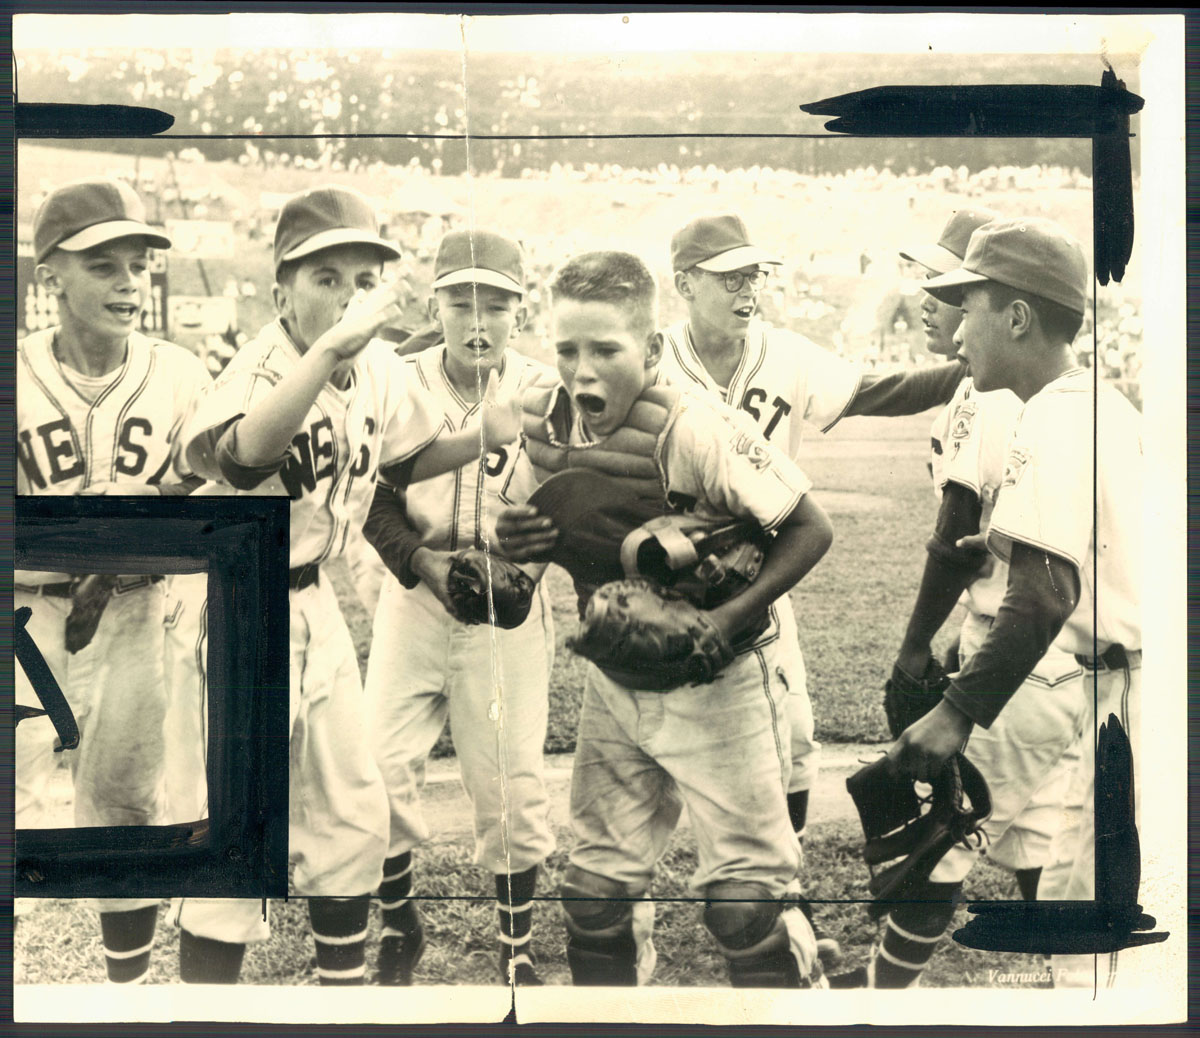 From the Vault: Little League baseball